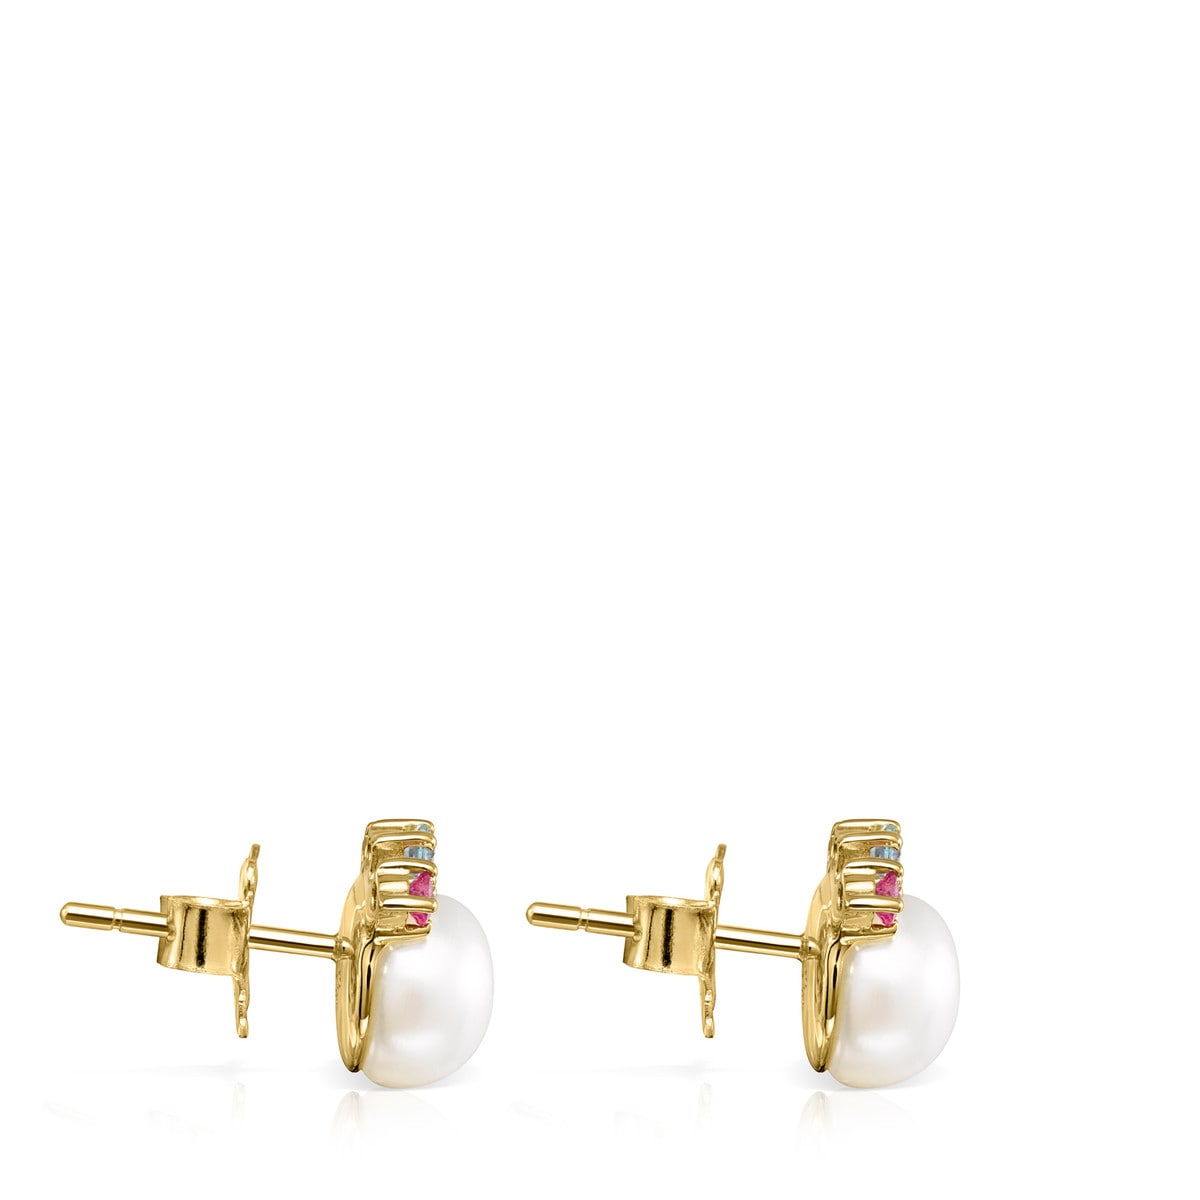 Gold Real Sisy Earrings with small Pearl and Gemstones